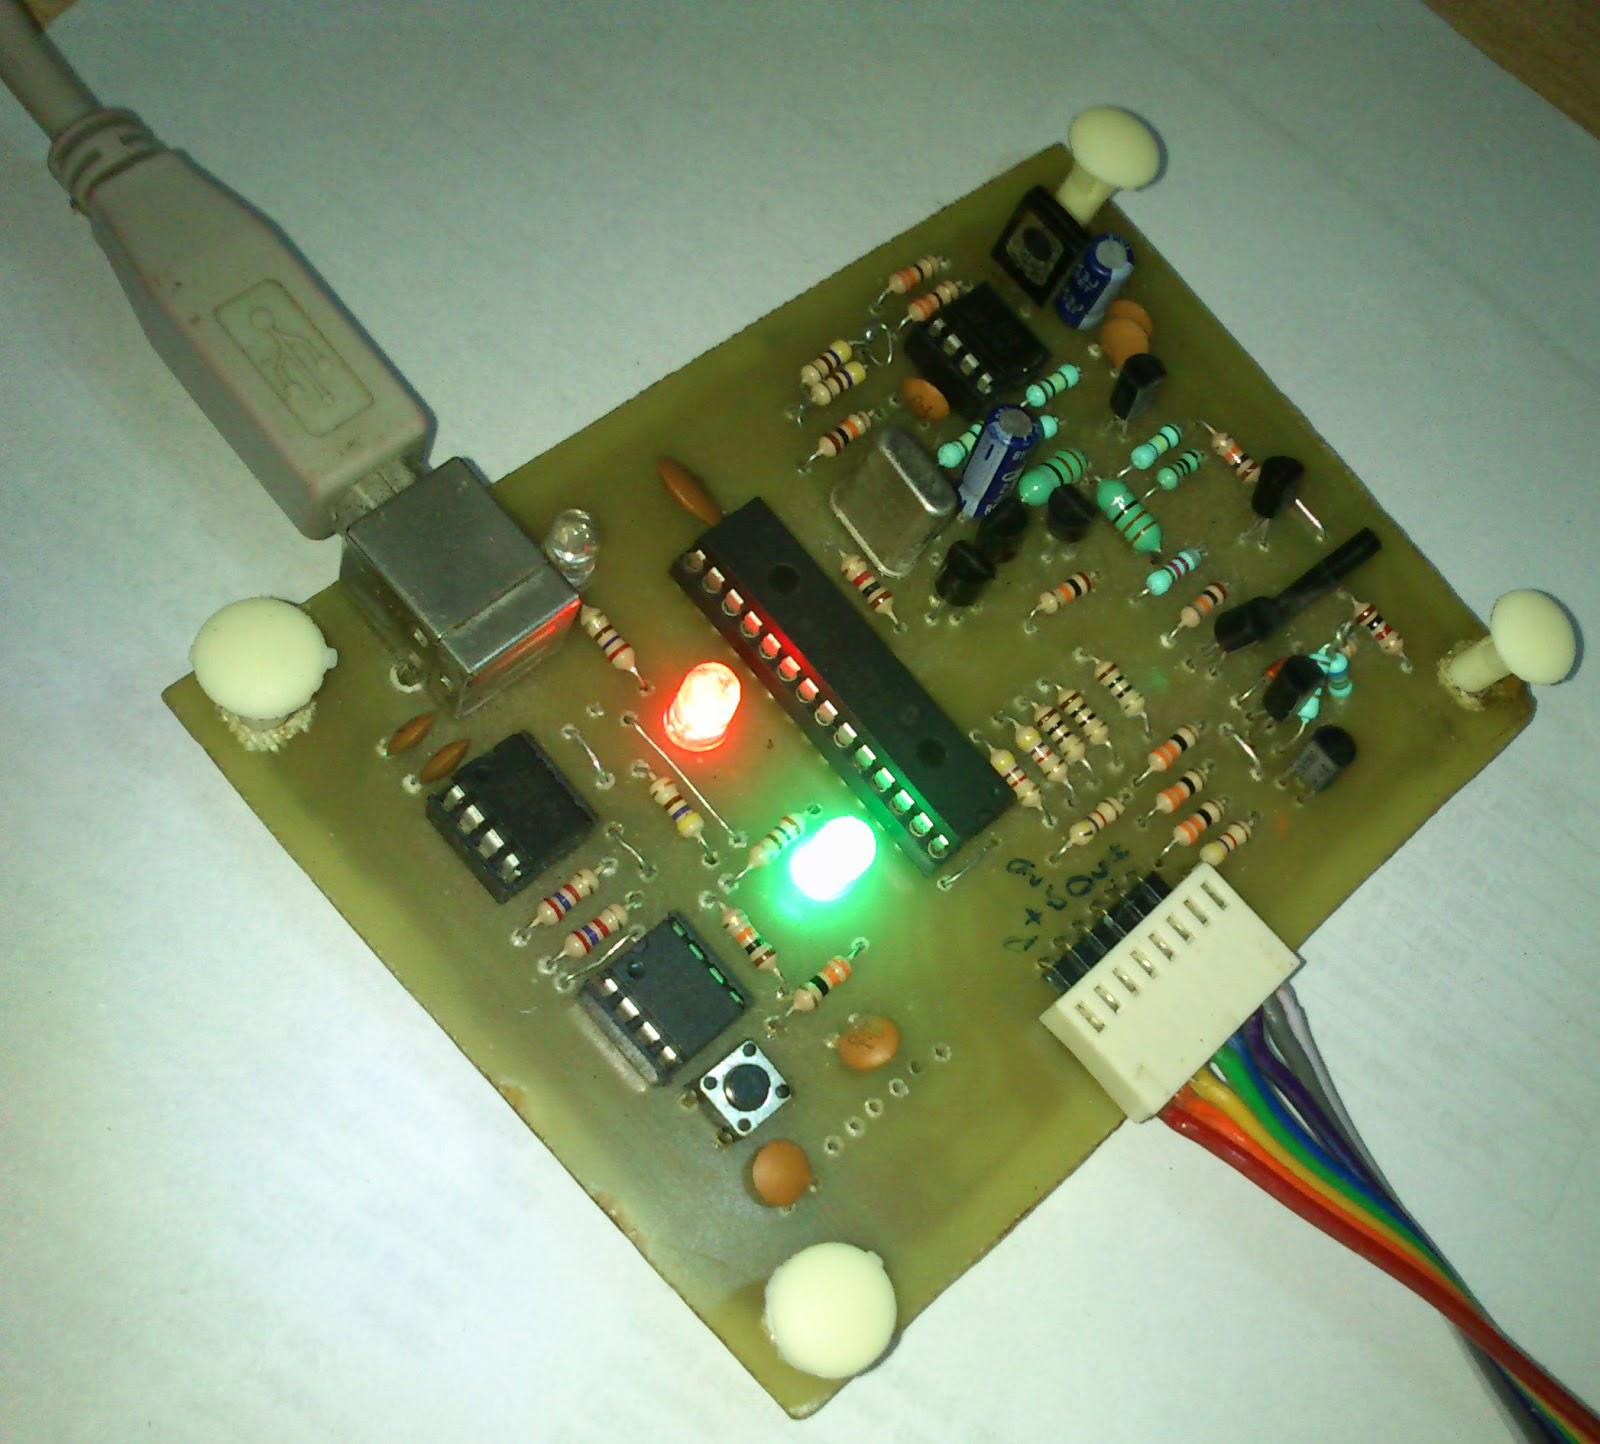 Pickit 2 Programmer Circuit Diagram Ez Go Wire Embedded Engineering Clone The Universal